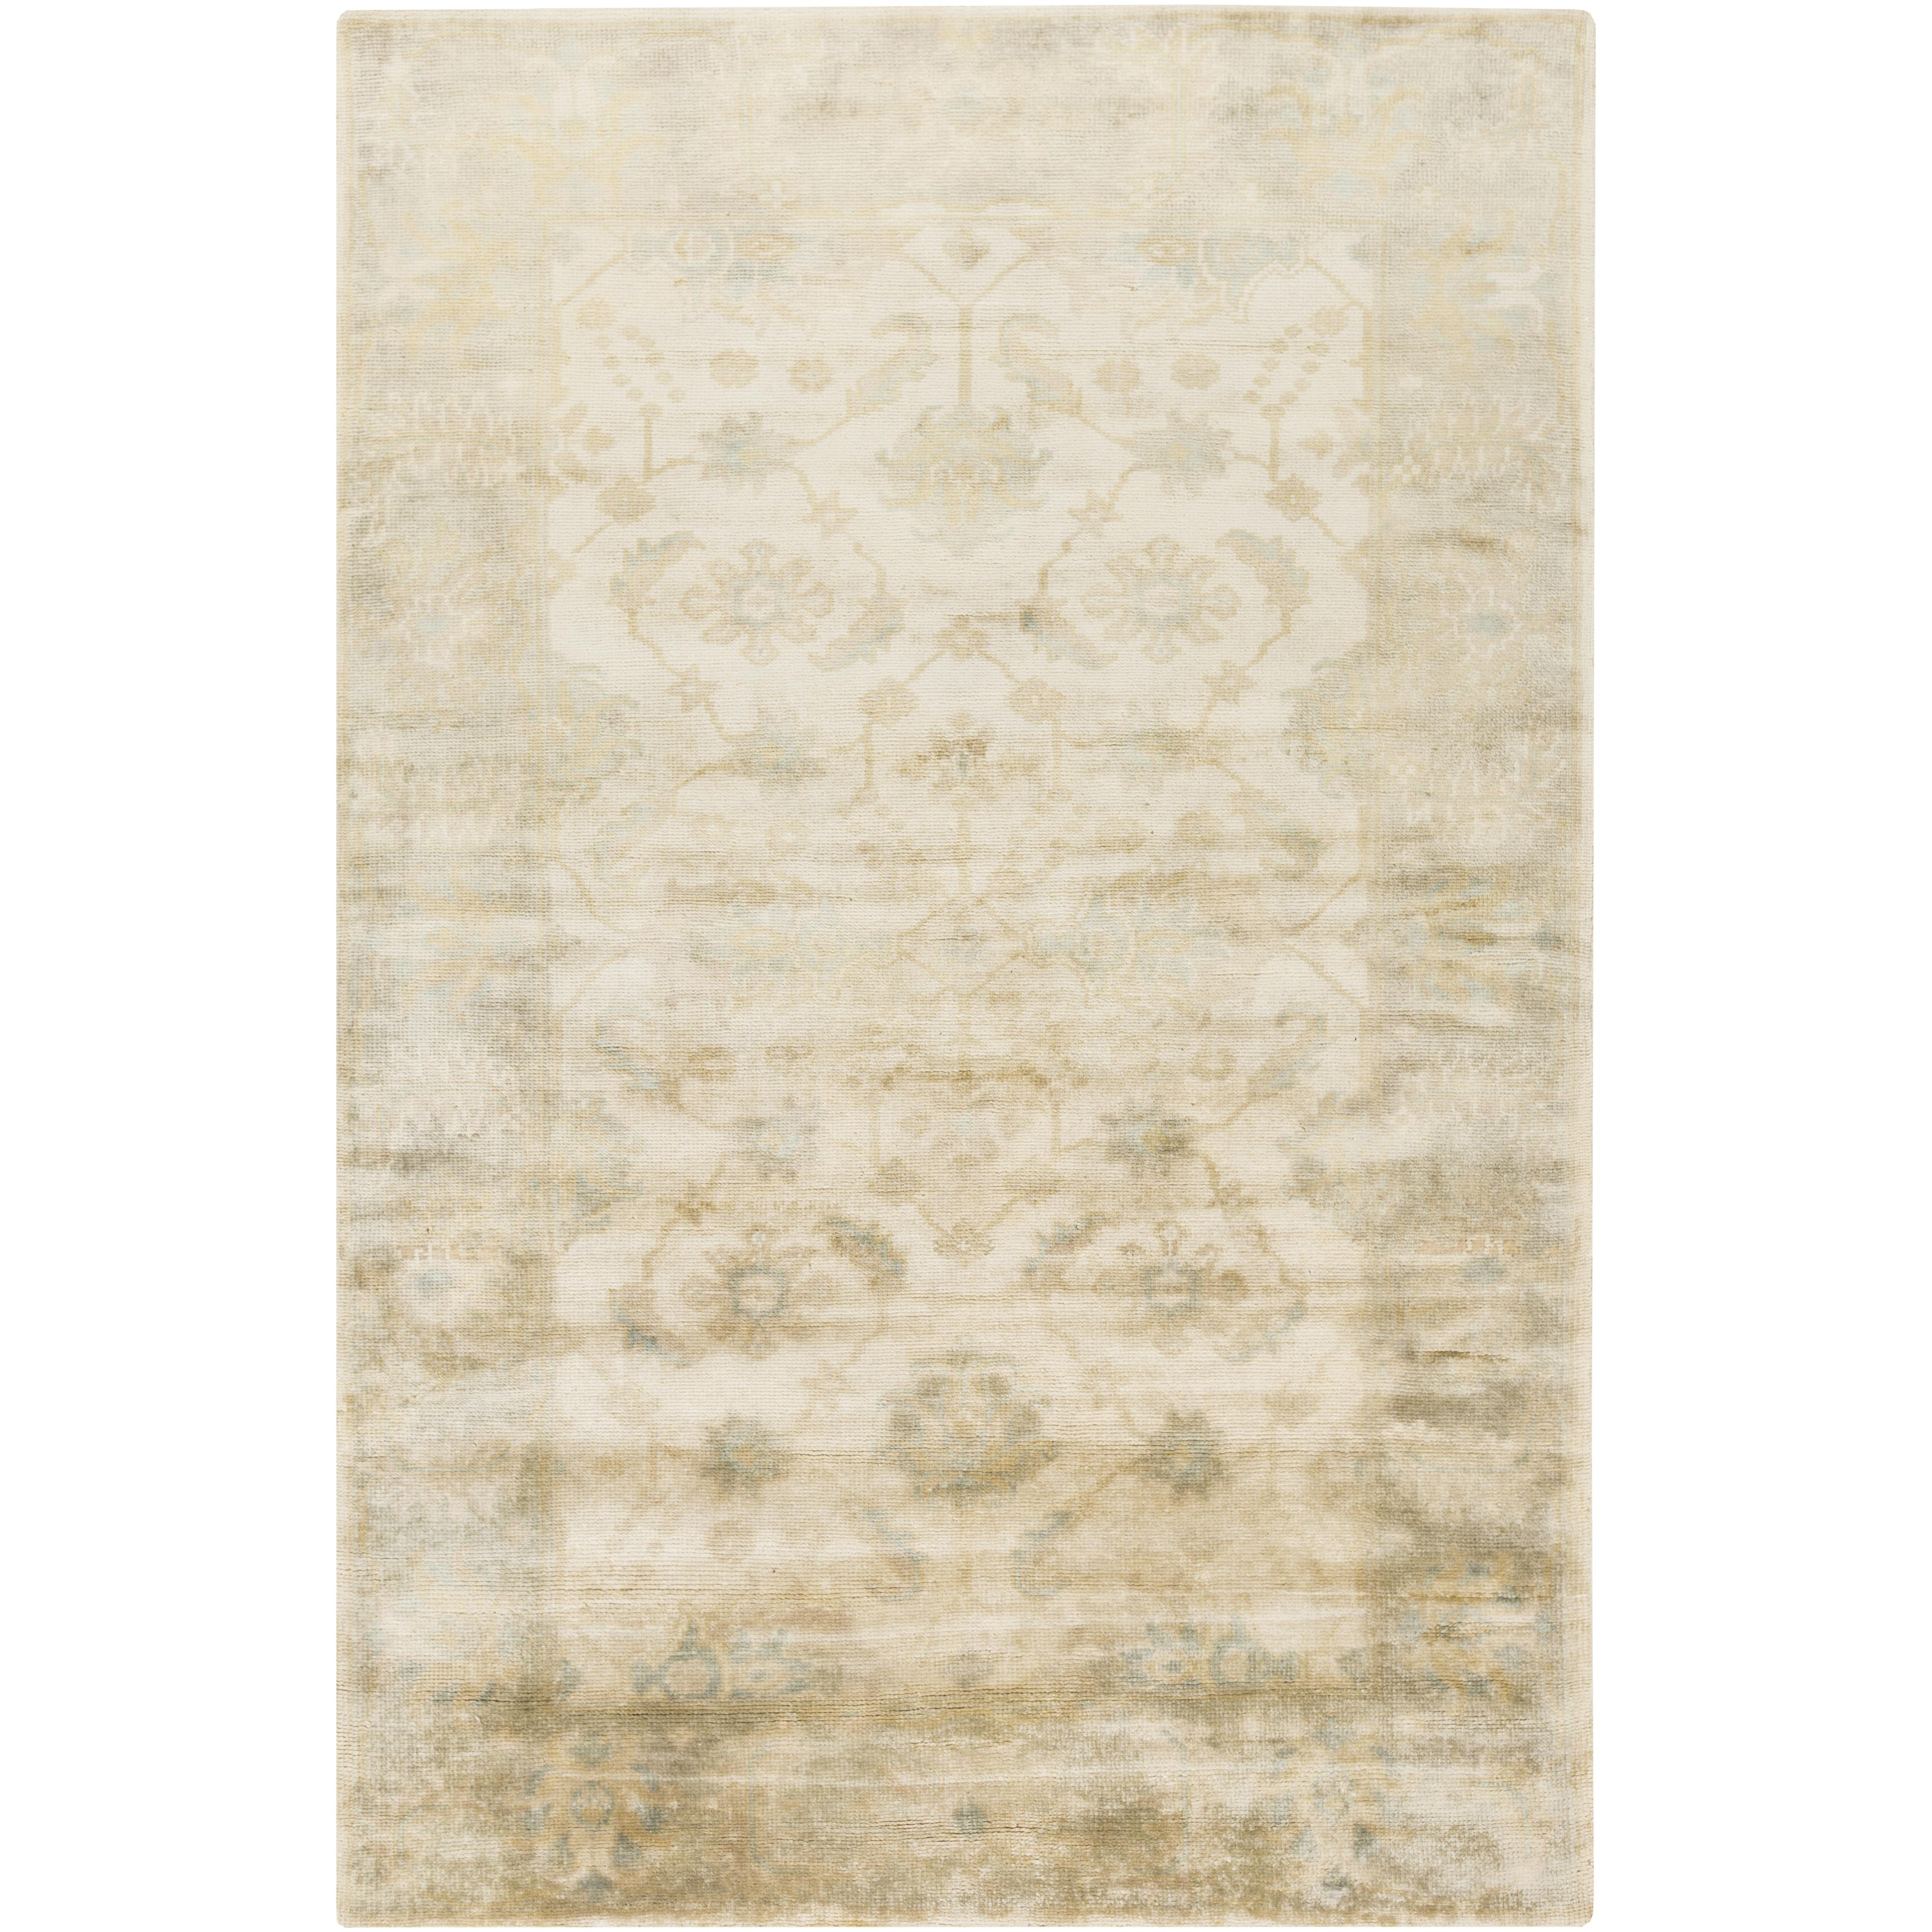 "Ainsley 5'6"" x 8'6"" by Ruby-Gordon Accents at Ruby Gordon Home"